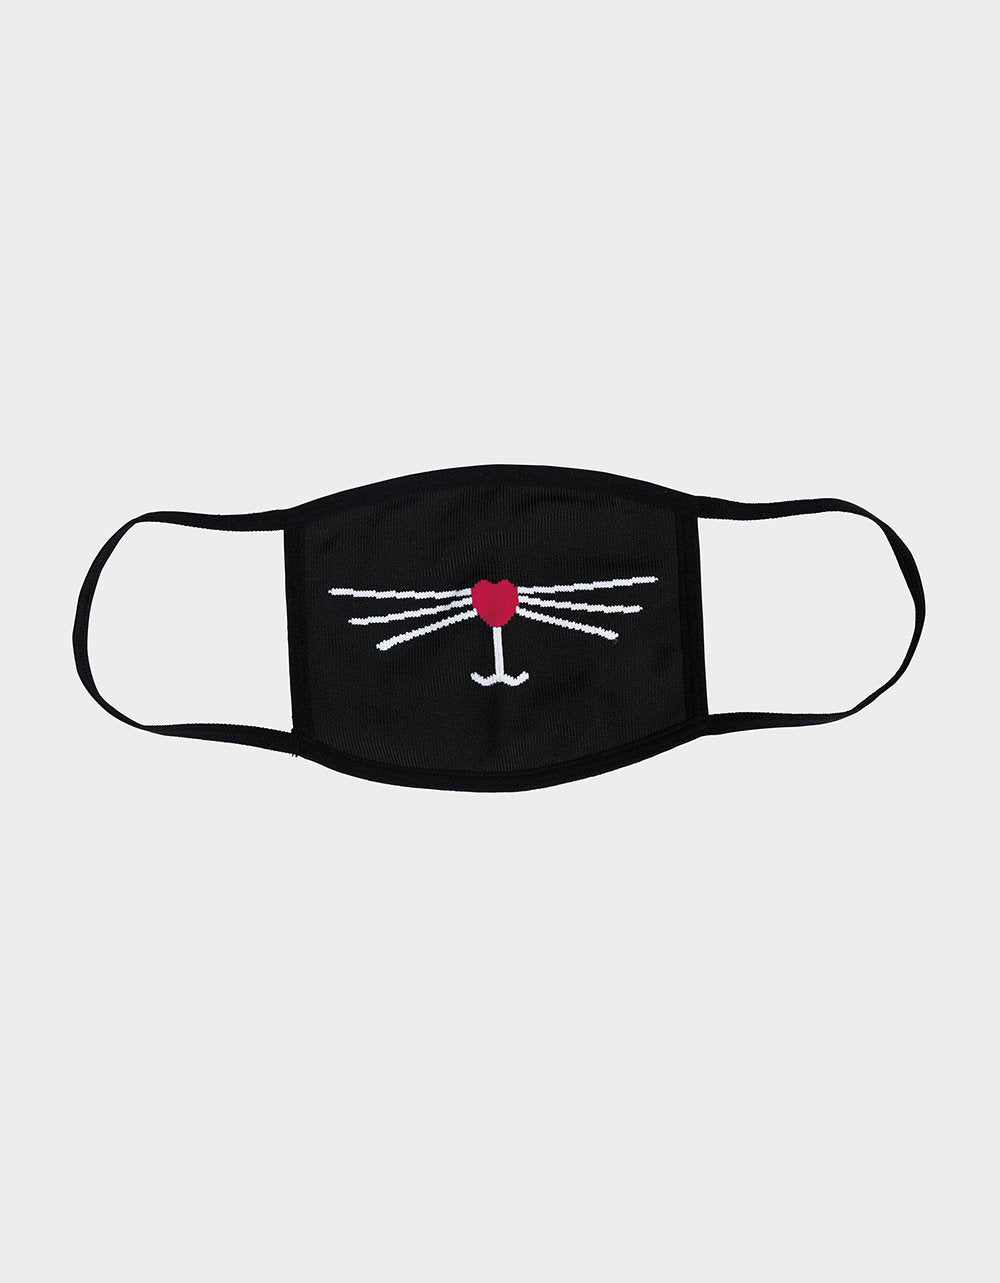 GOOD KITTY MASK BLACK - ACCESSORIES - Betsey Johnson